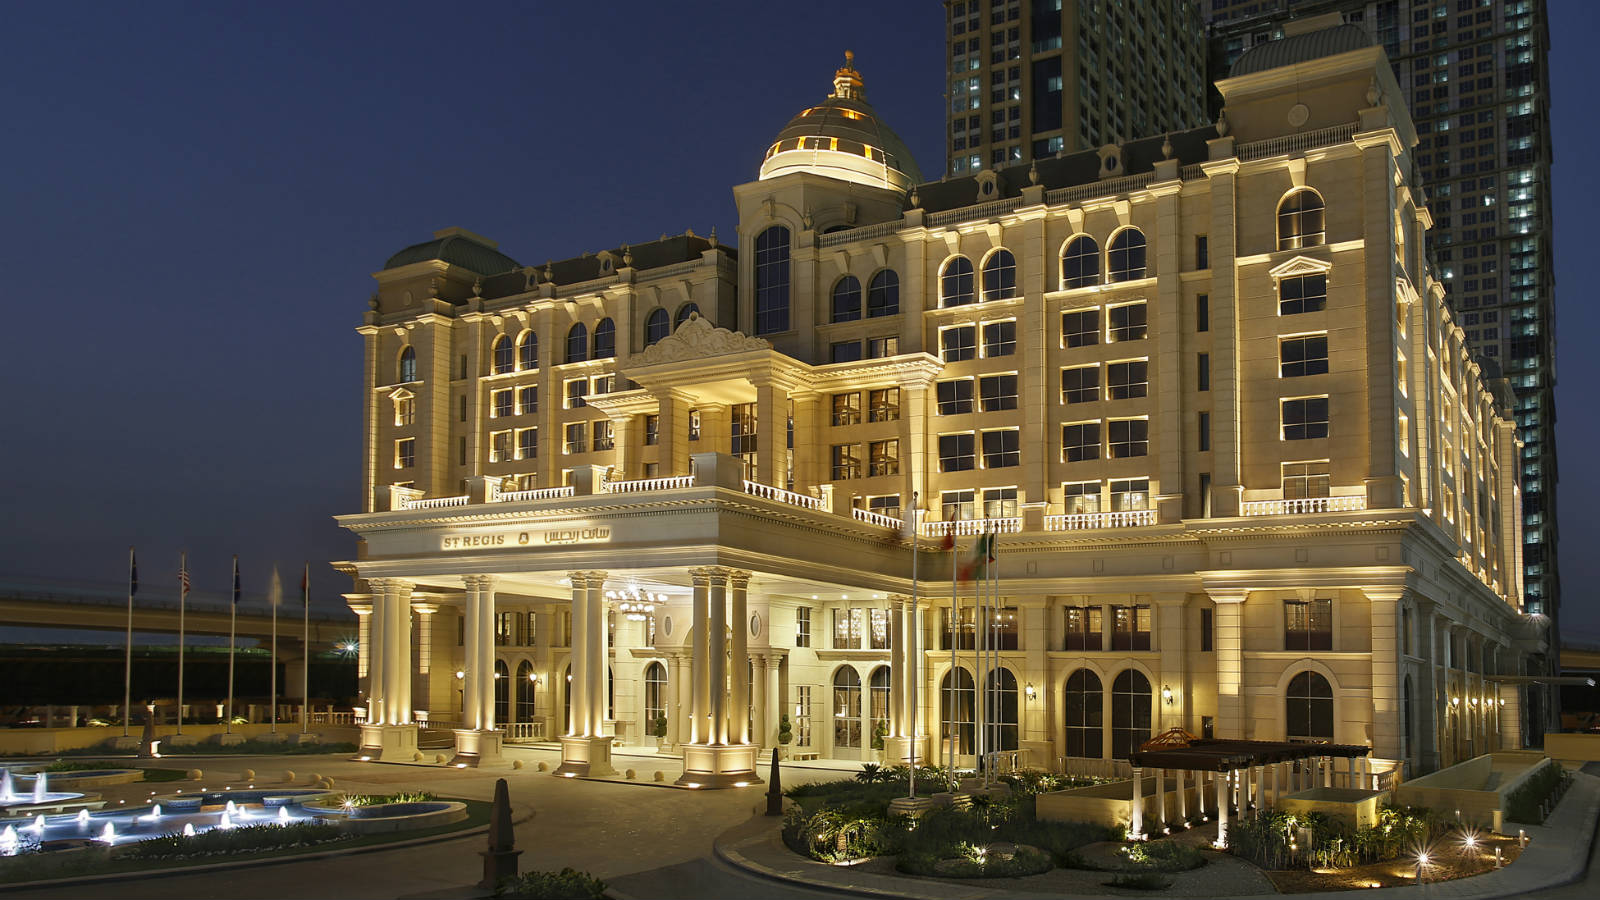 Recently opened st regis hotel and resort in dubai for Top hotels in dubai list